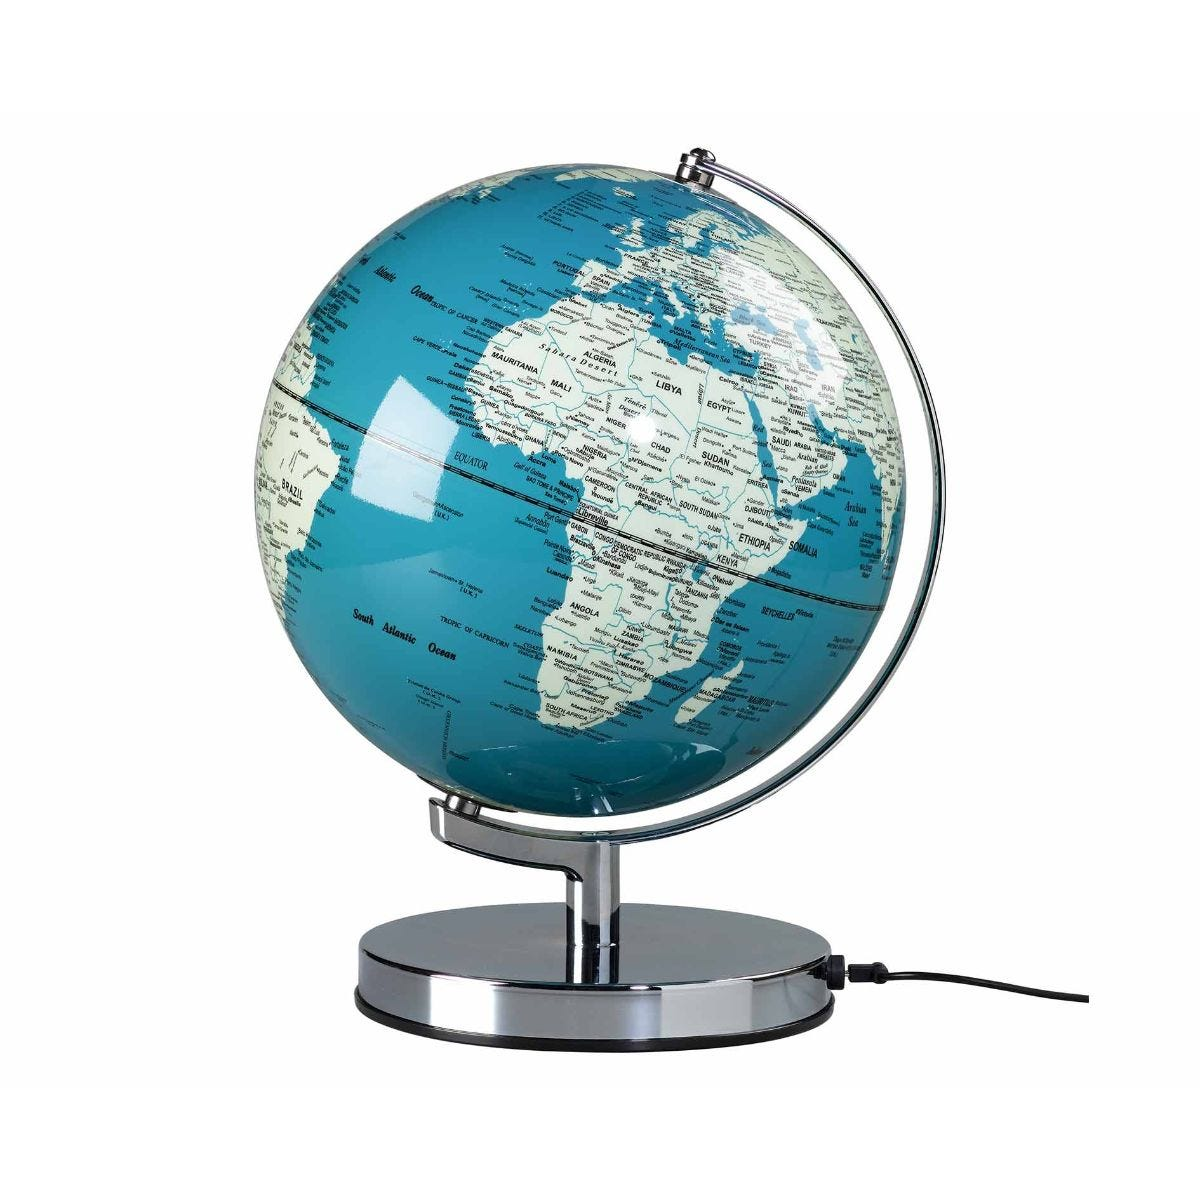 Wild and Wolf Wild Wood Illuminated LED Globe Light 10 Inch French Blue